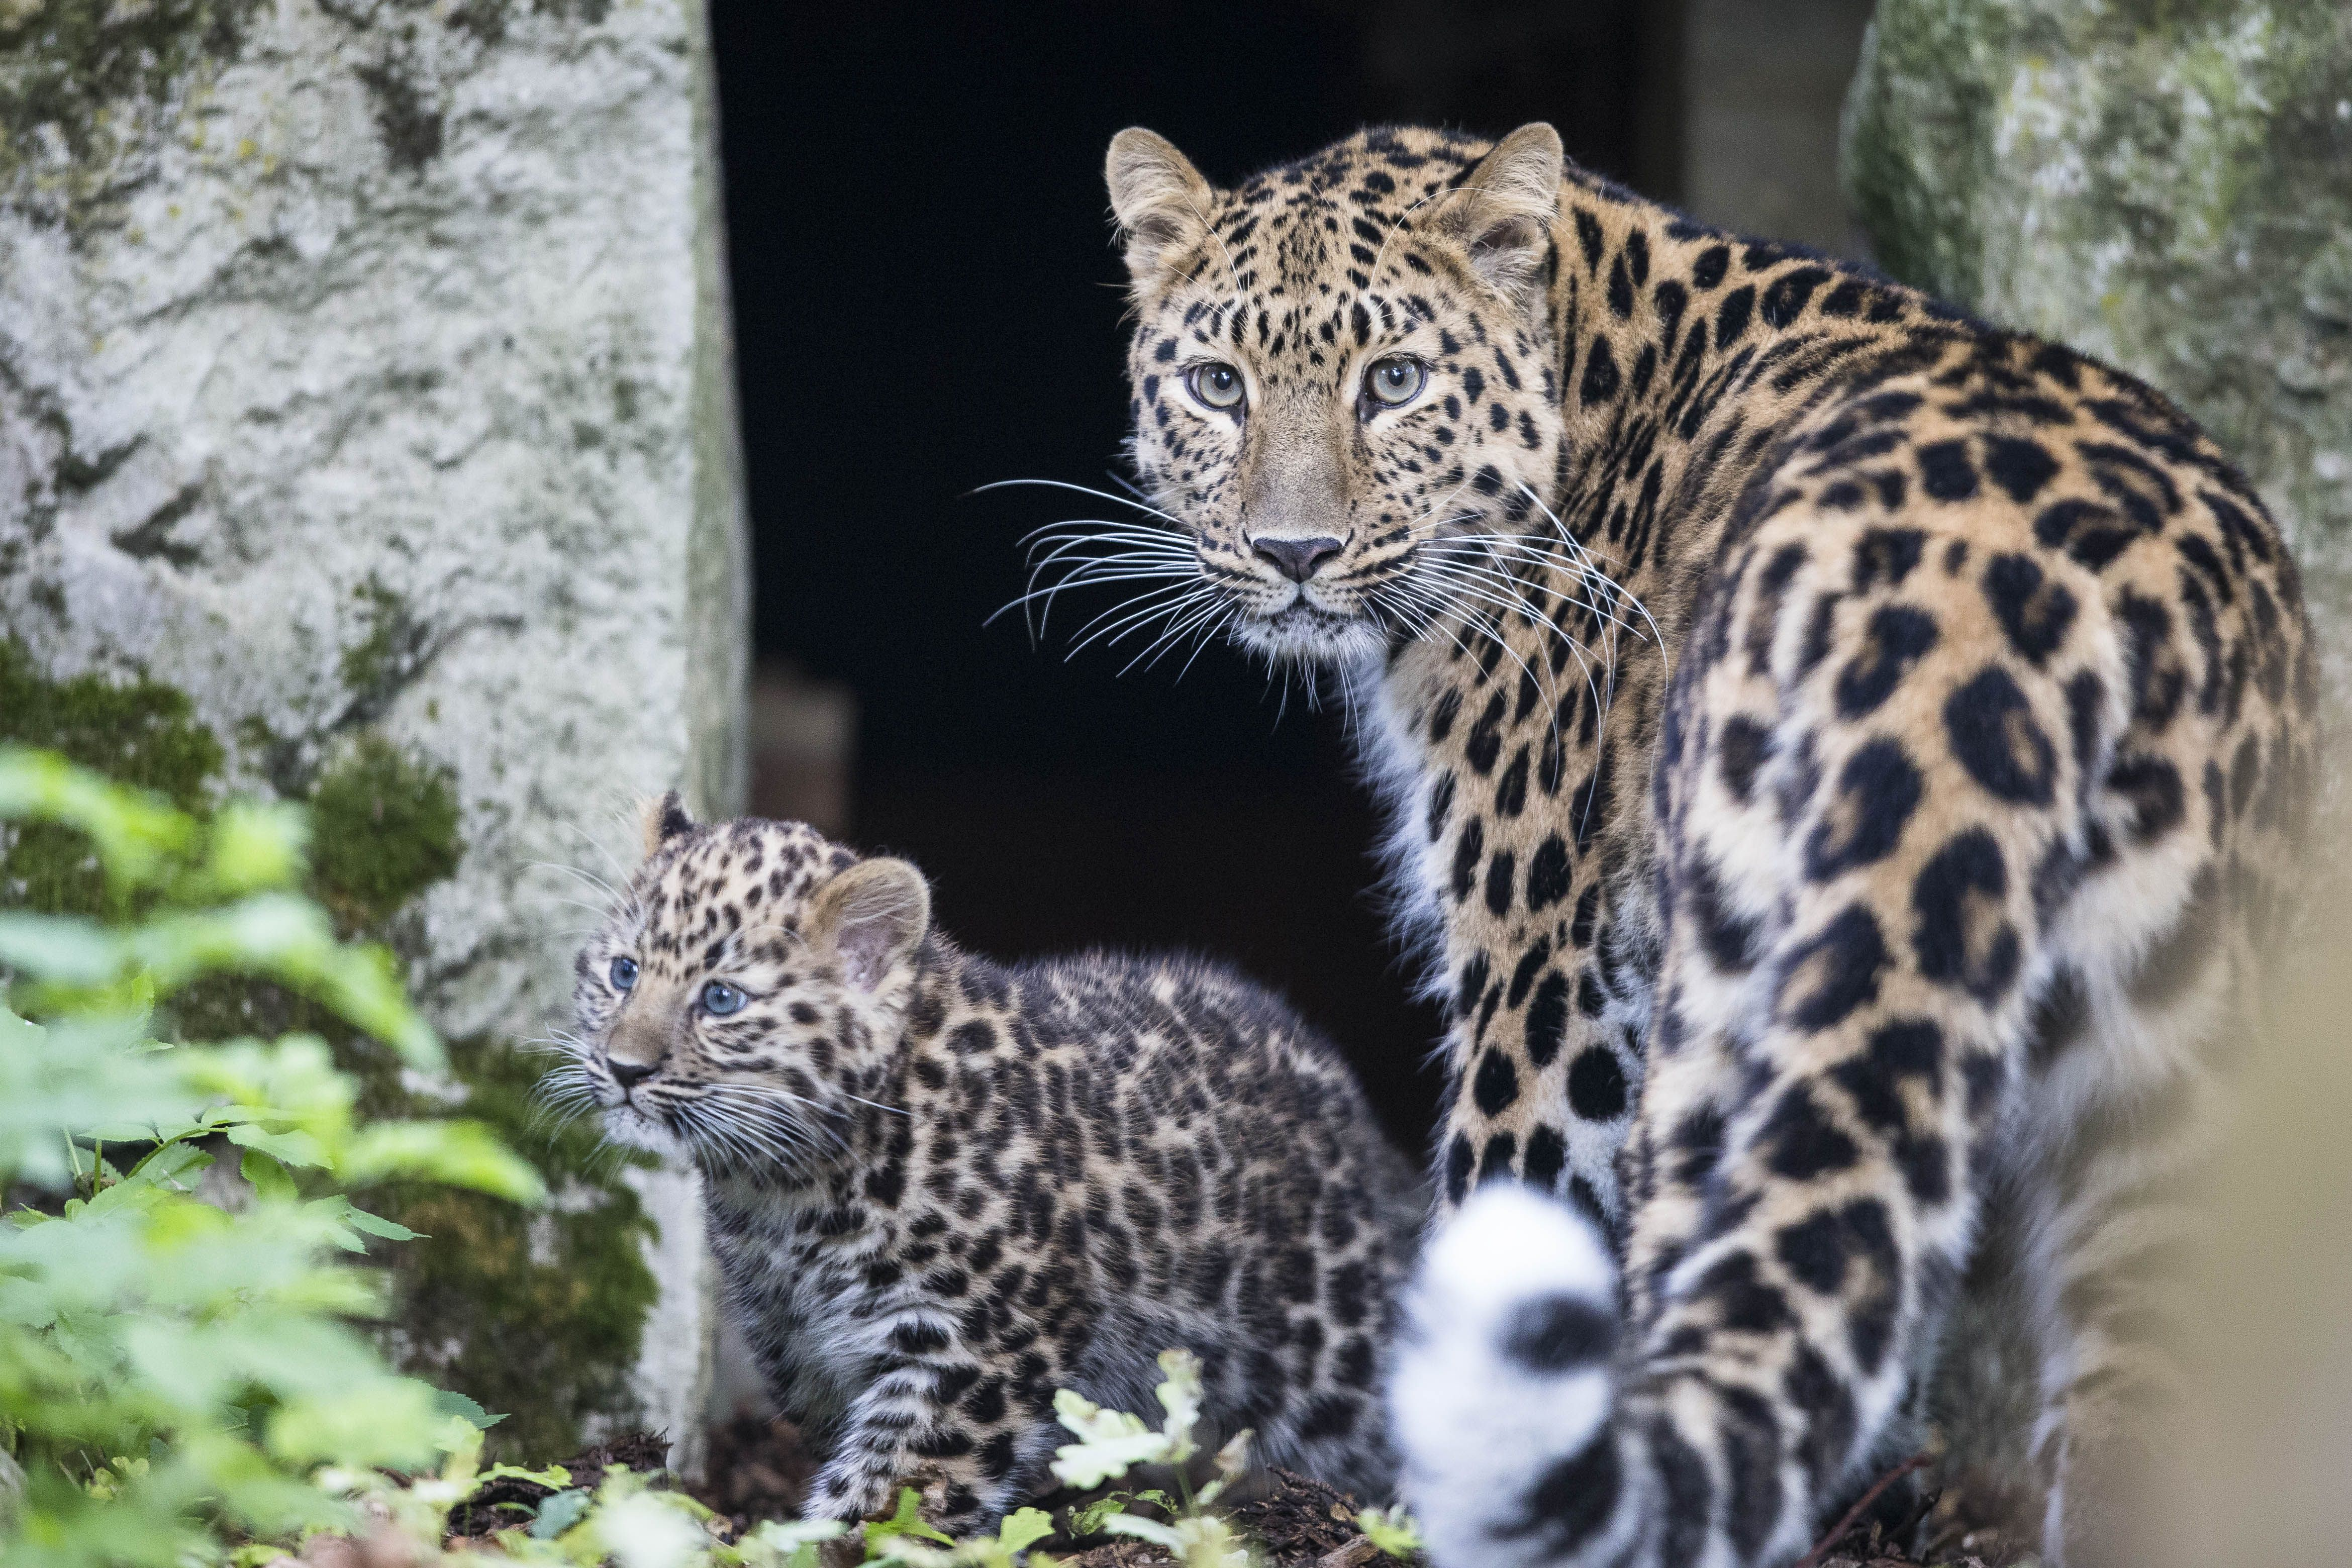 The Amur Leopard Is Critically Endangered